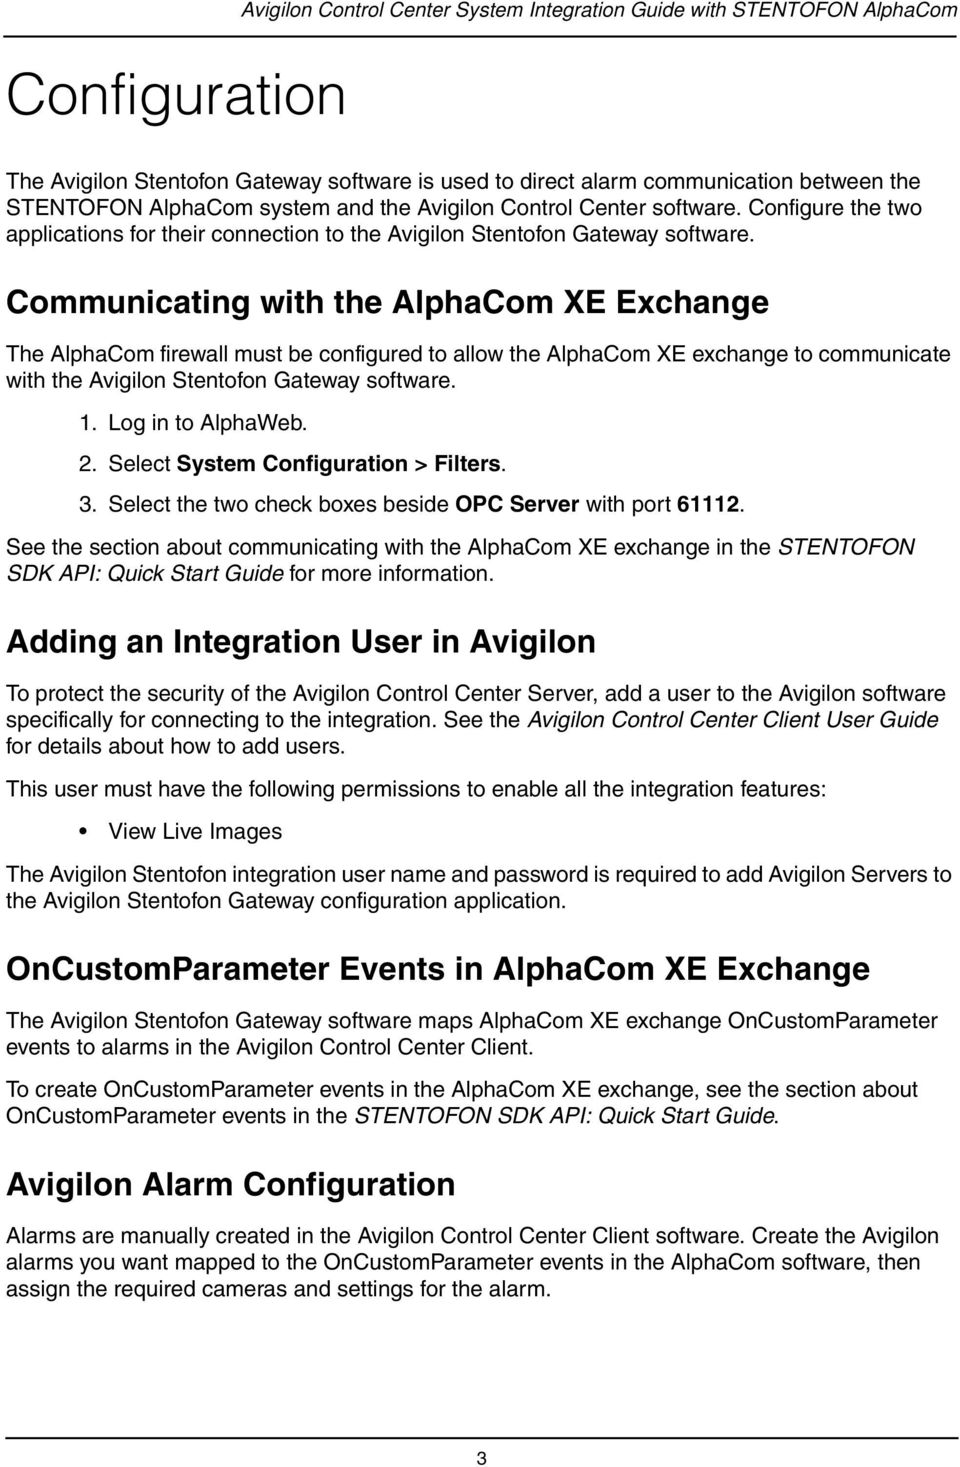 Communicating with the AlphaCom XE Exchange The AlphaCom firewall must be configured to allow the AlphaCom XE exchange to communicate with the Avigilon Stentofon Gateway software. 1.